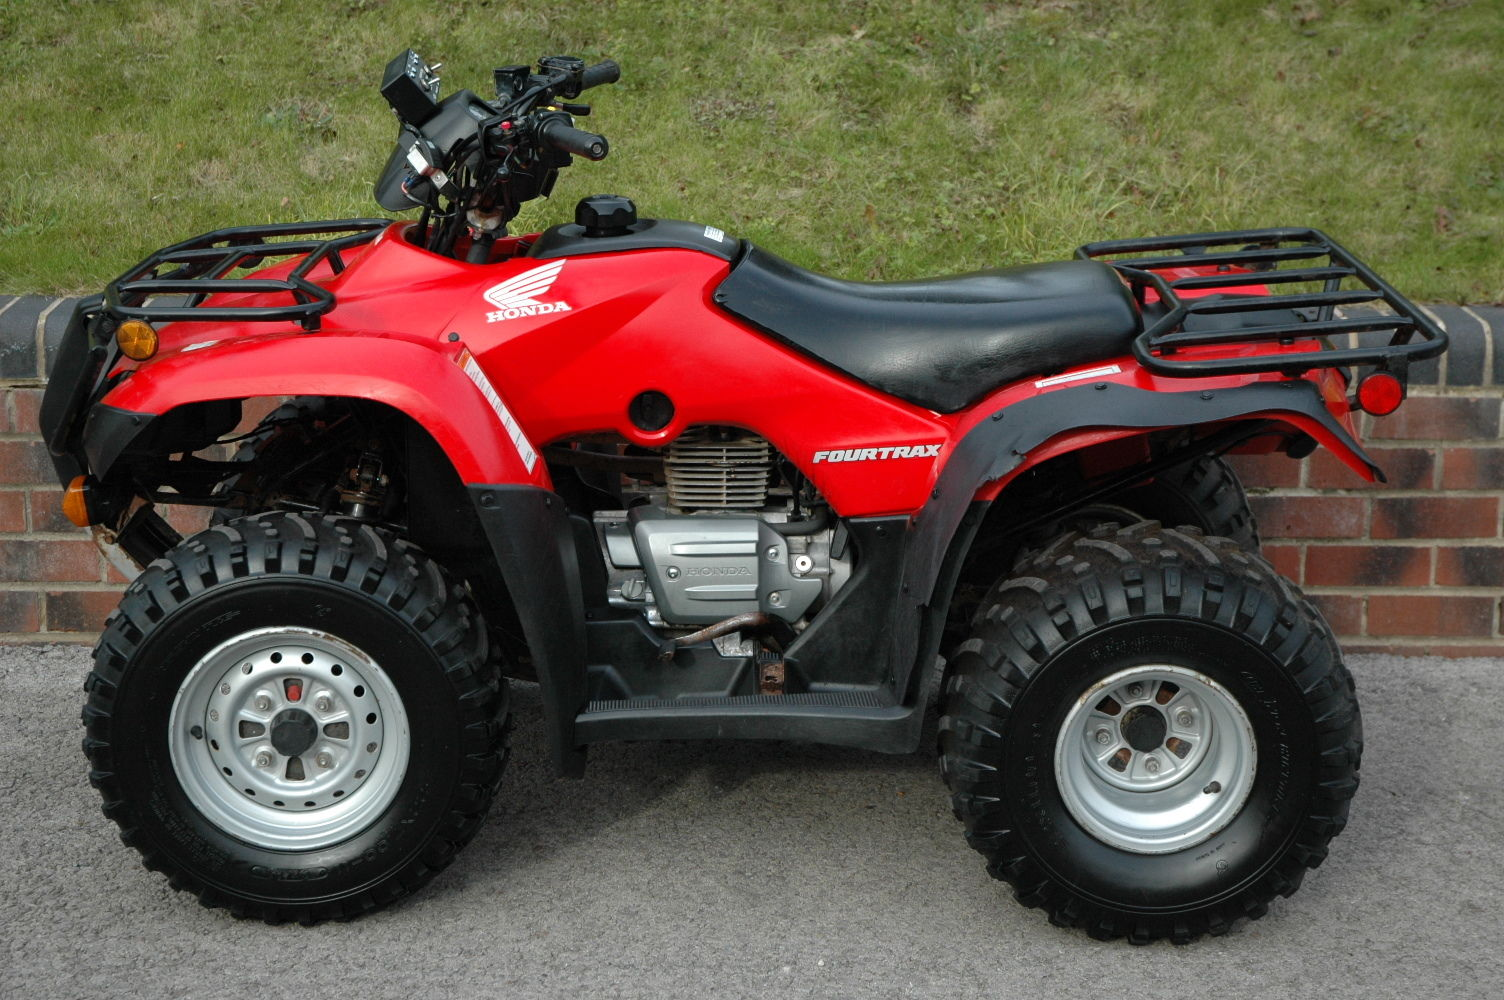 honda fourtrax trx250tm quad bike atv road registered. Black Bedroom Furniture Sets. Home Design Ideas